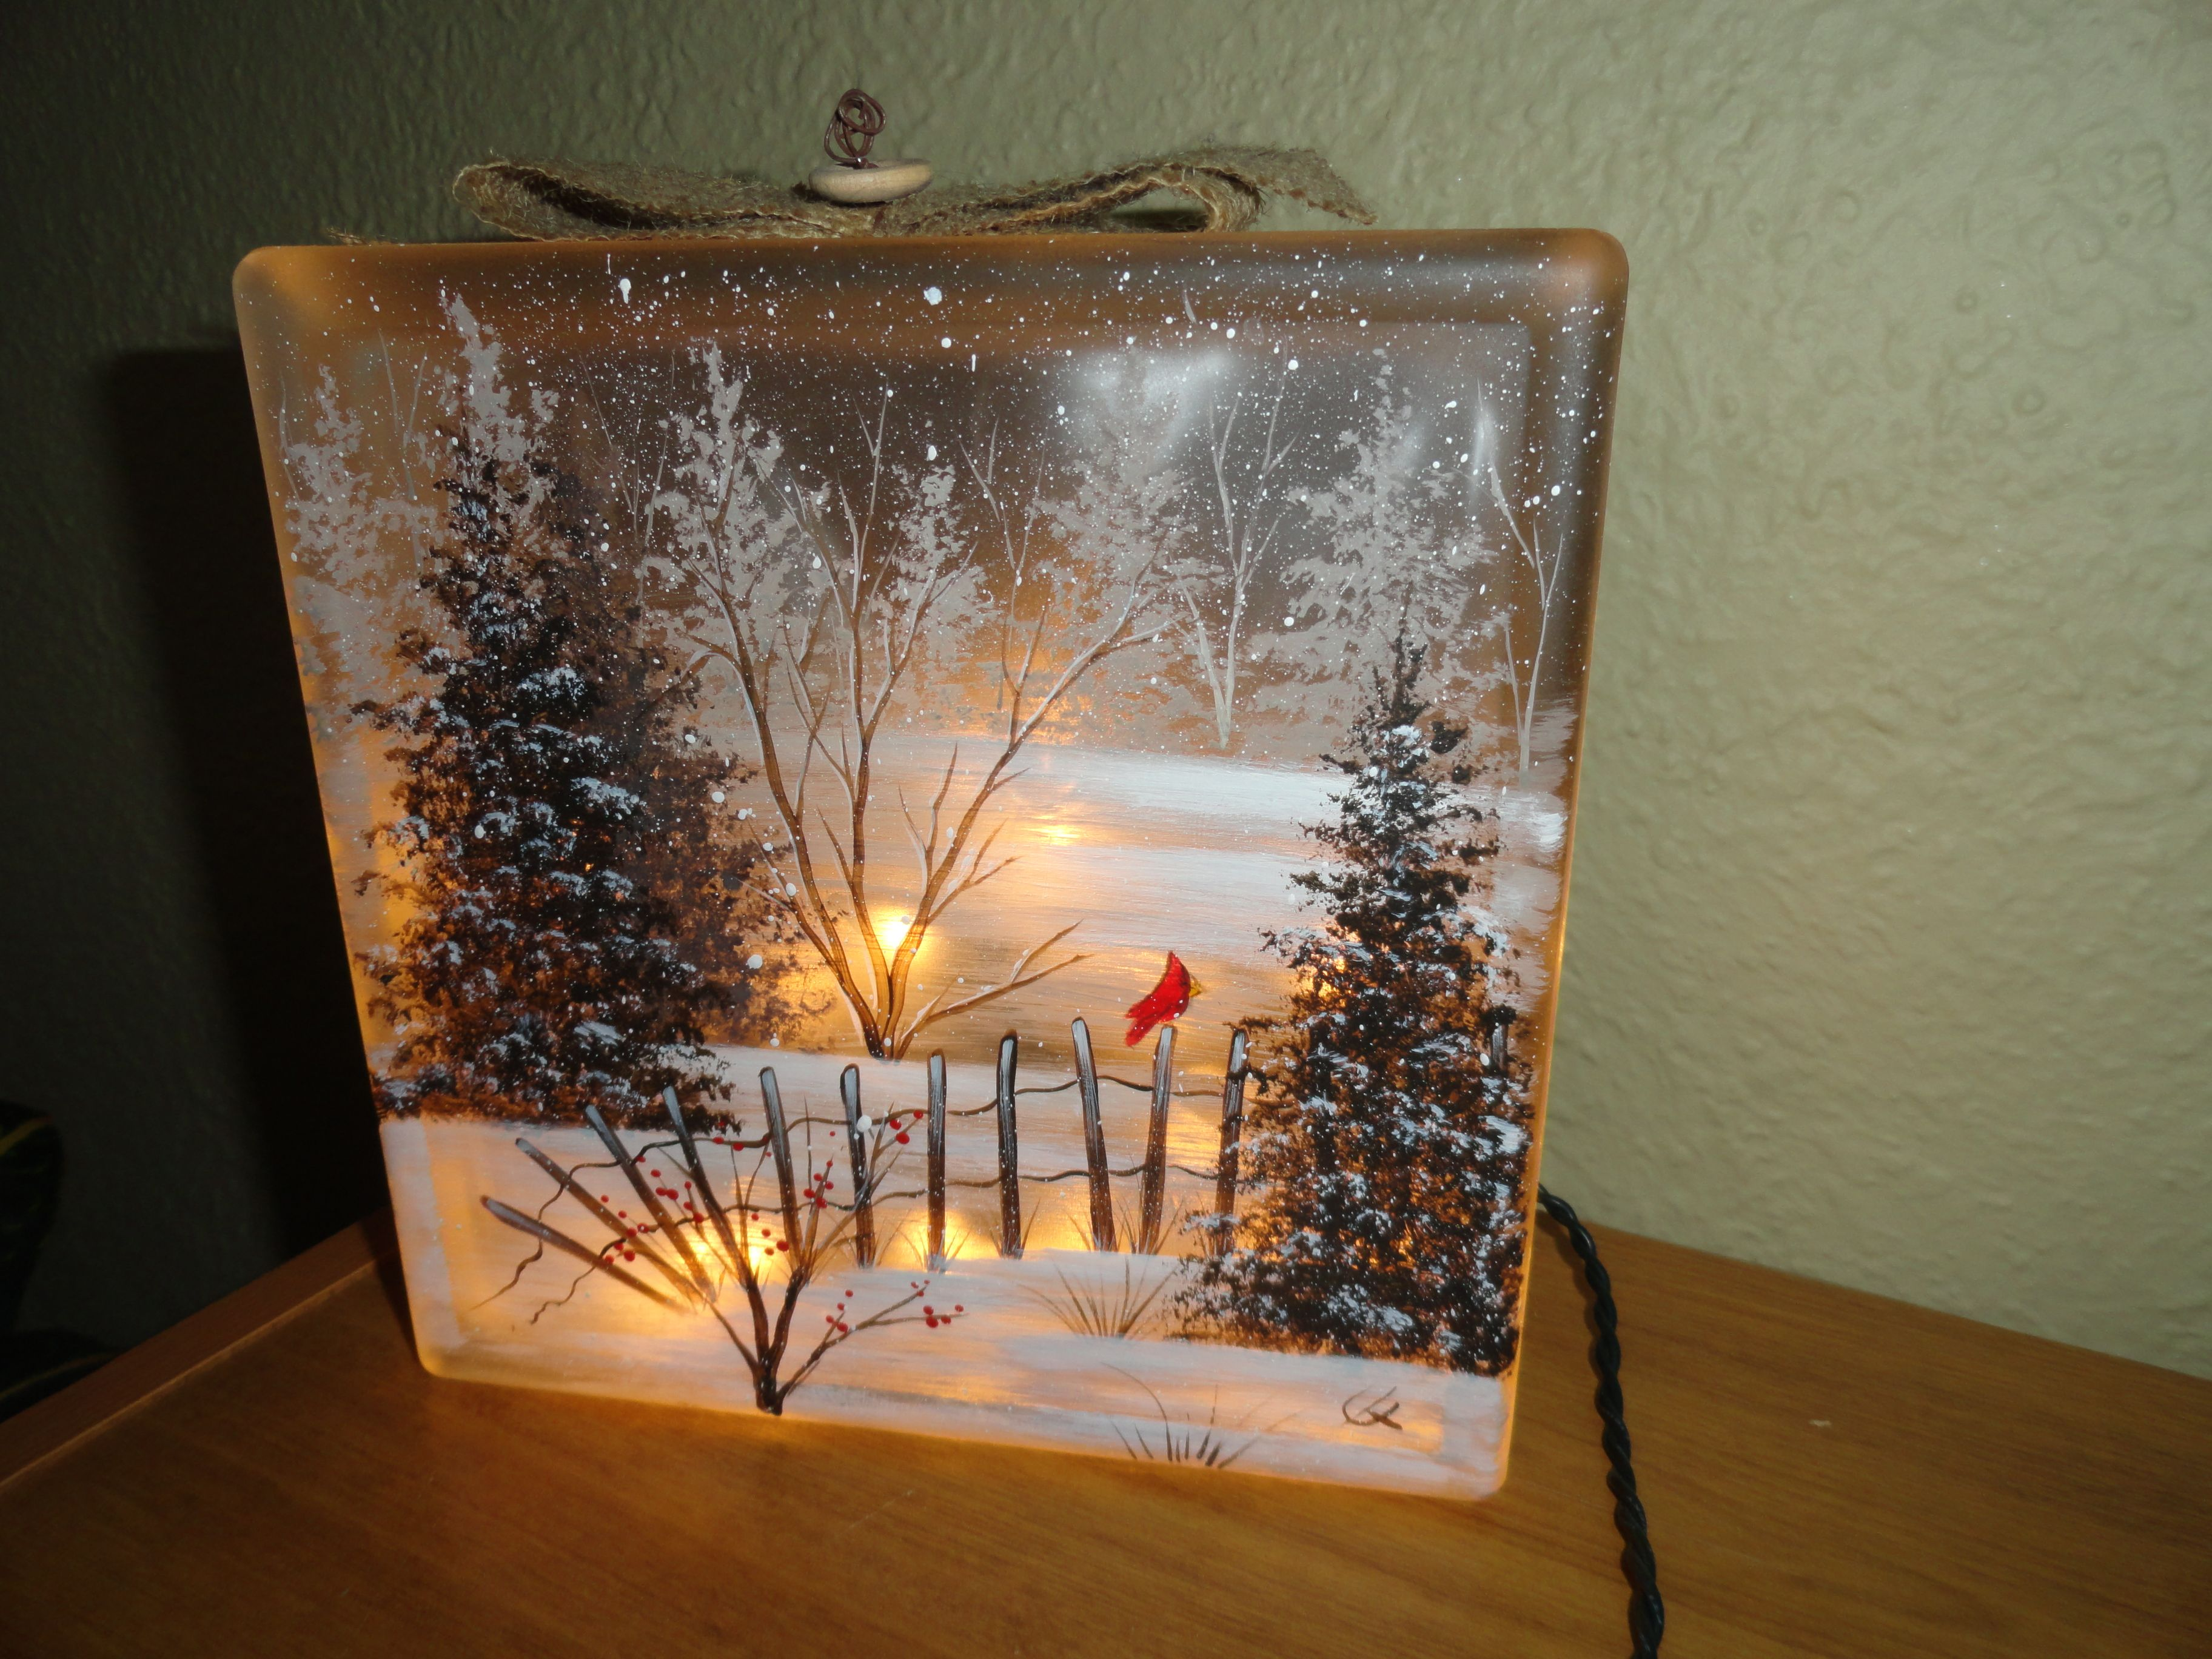 Pin By Judy Burns On Crafts Glass Block Crafts Christmas Glass Blocks Glass Crafts